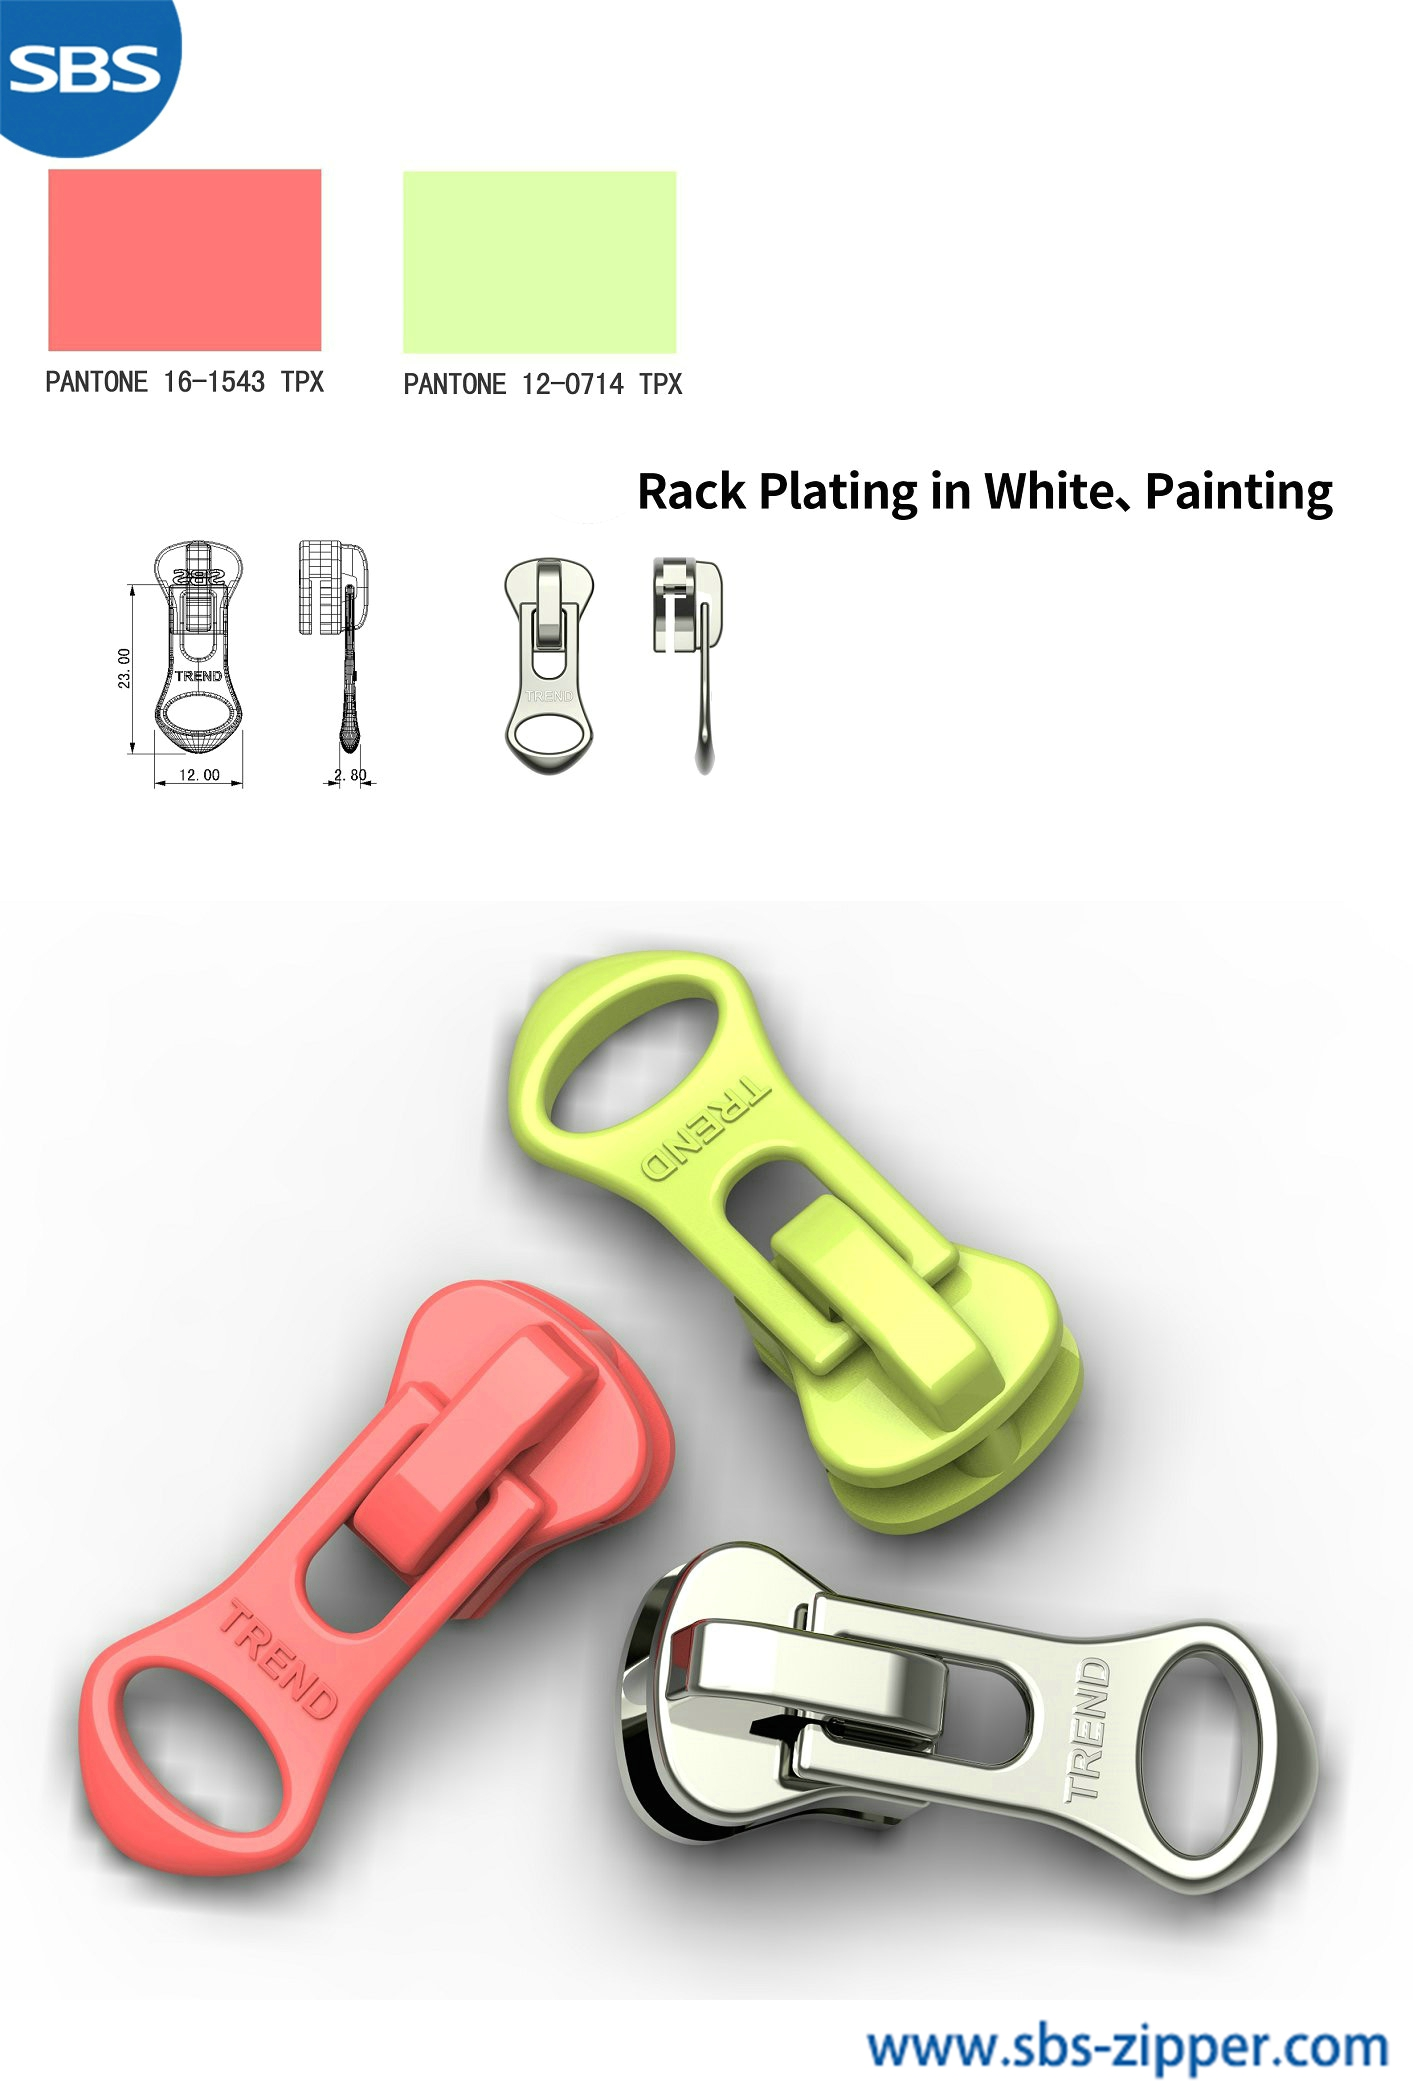 Decorative Zipper Pulls Wholesale 18ACC020丨sbs-zipper.com